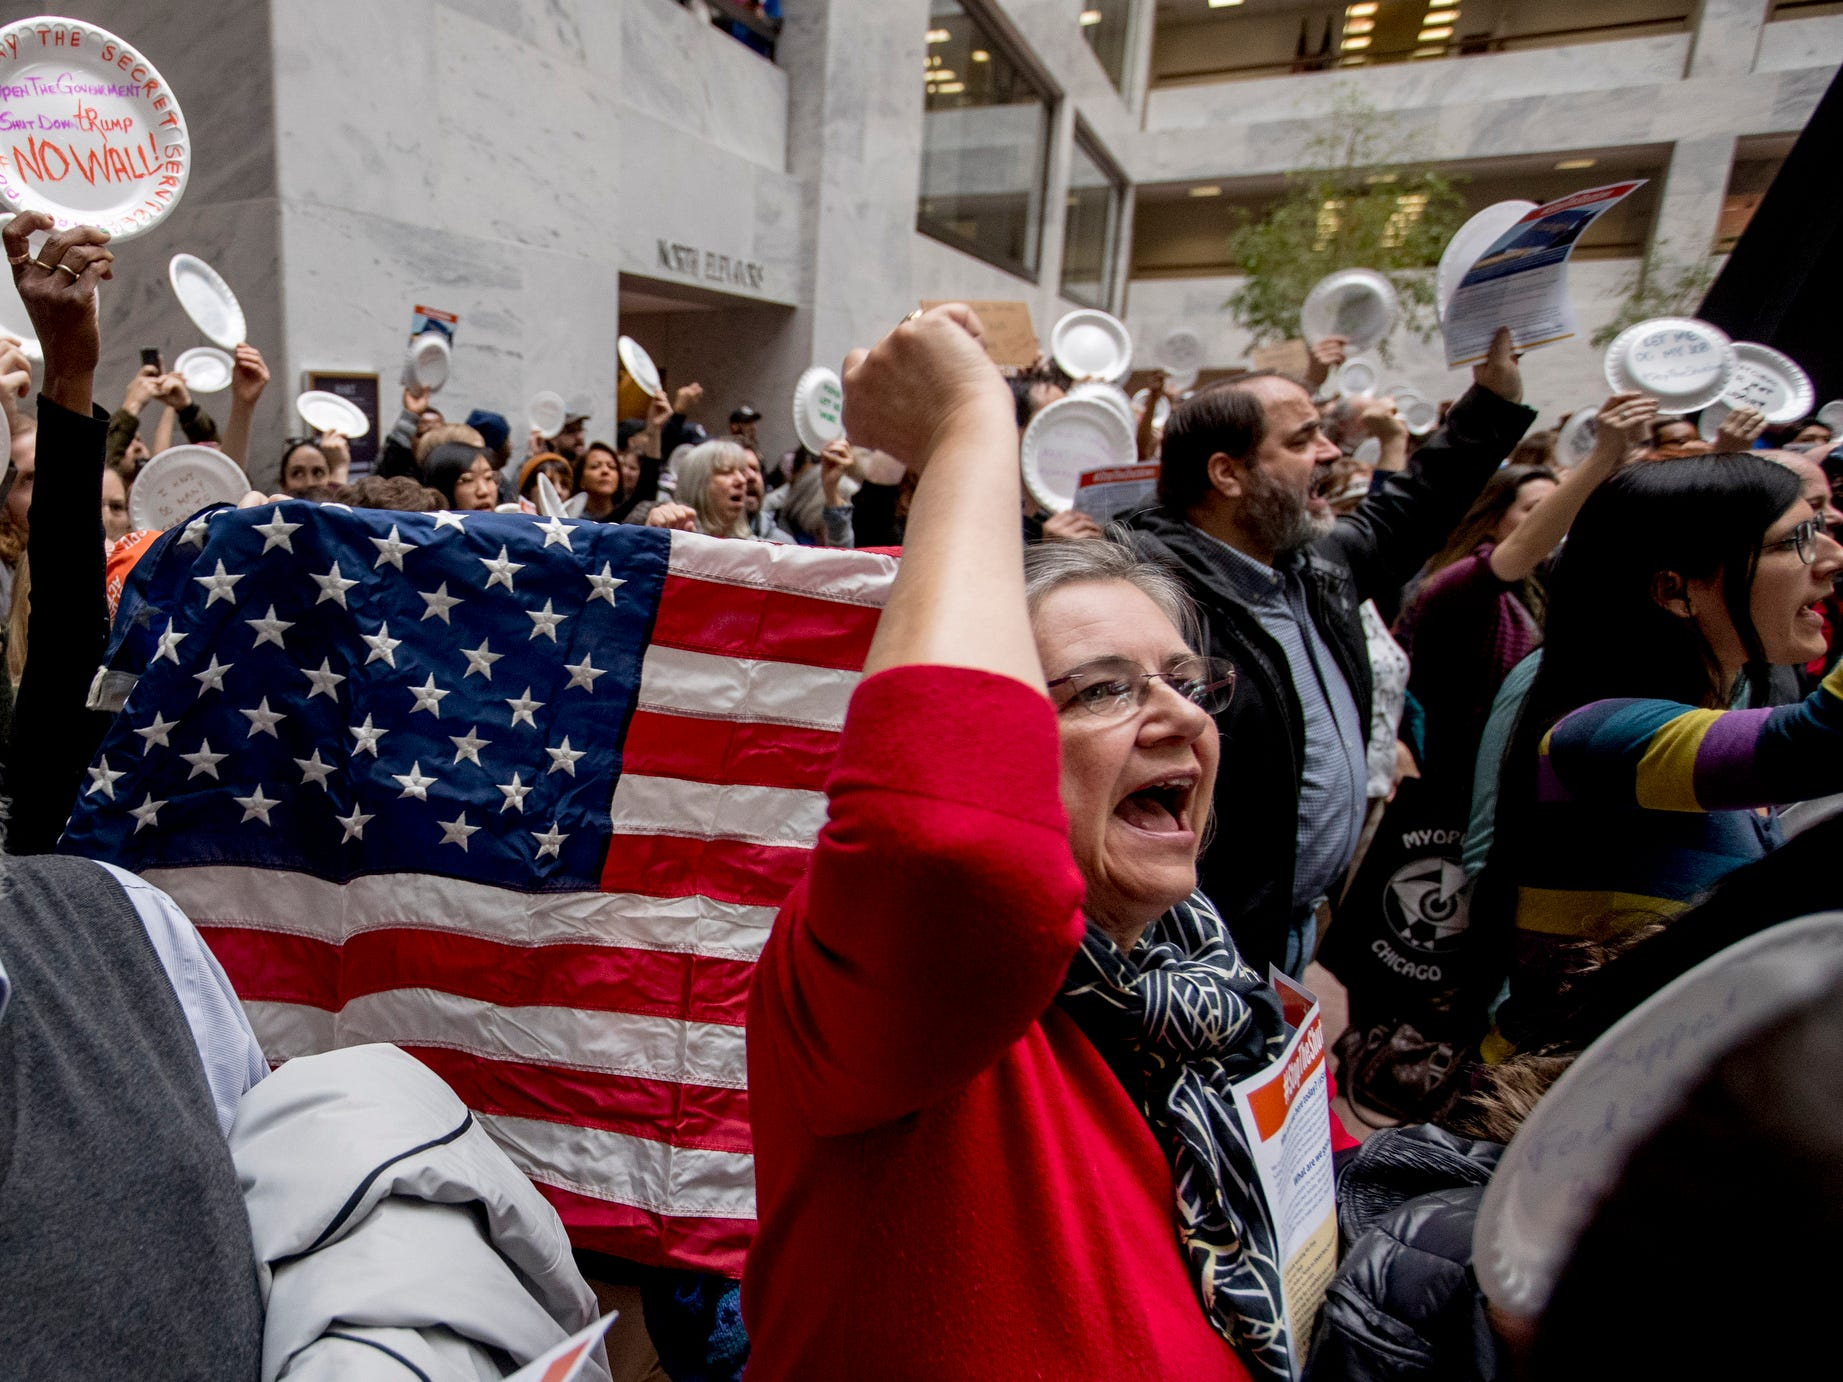 Furloughed government workers affected by the shutdown yell during a protest against the ongoing partial government shutdown on Capitol Hill in Washington, Jan. 23, 2019.